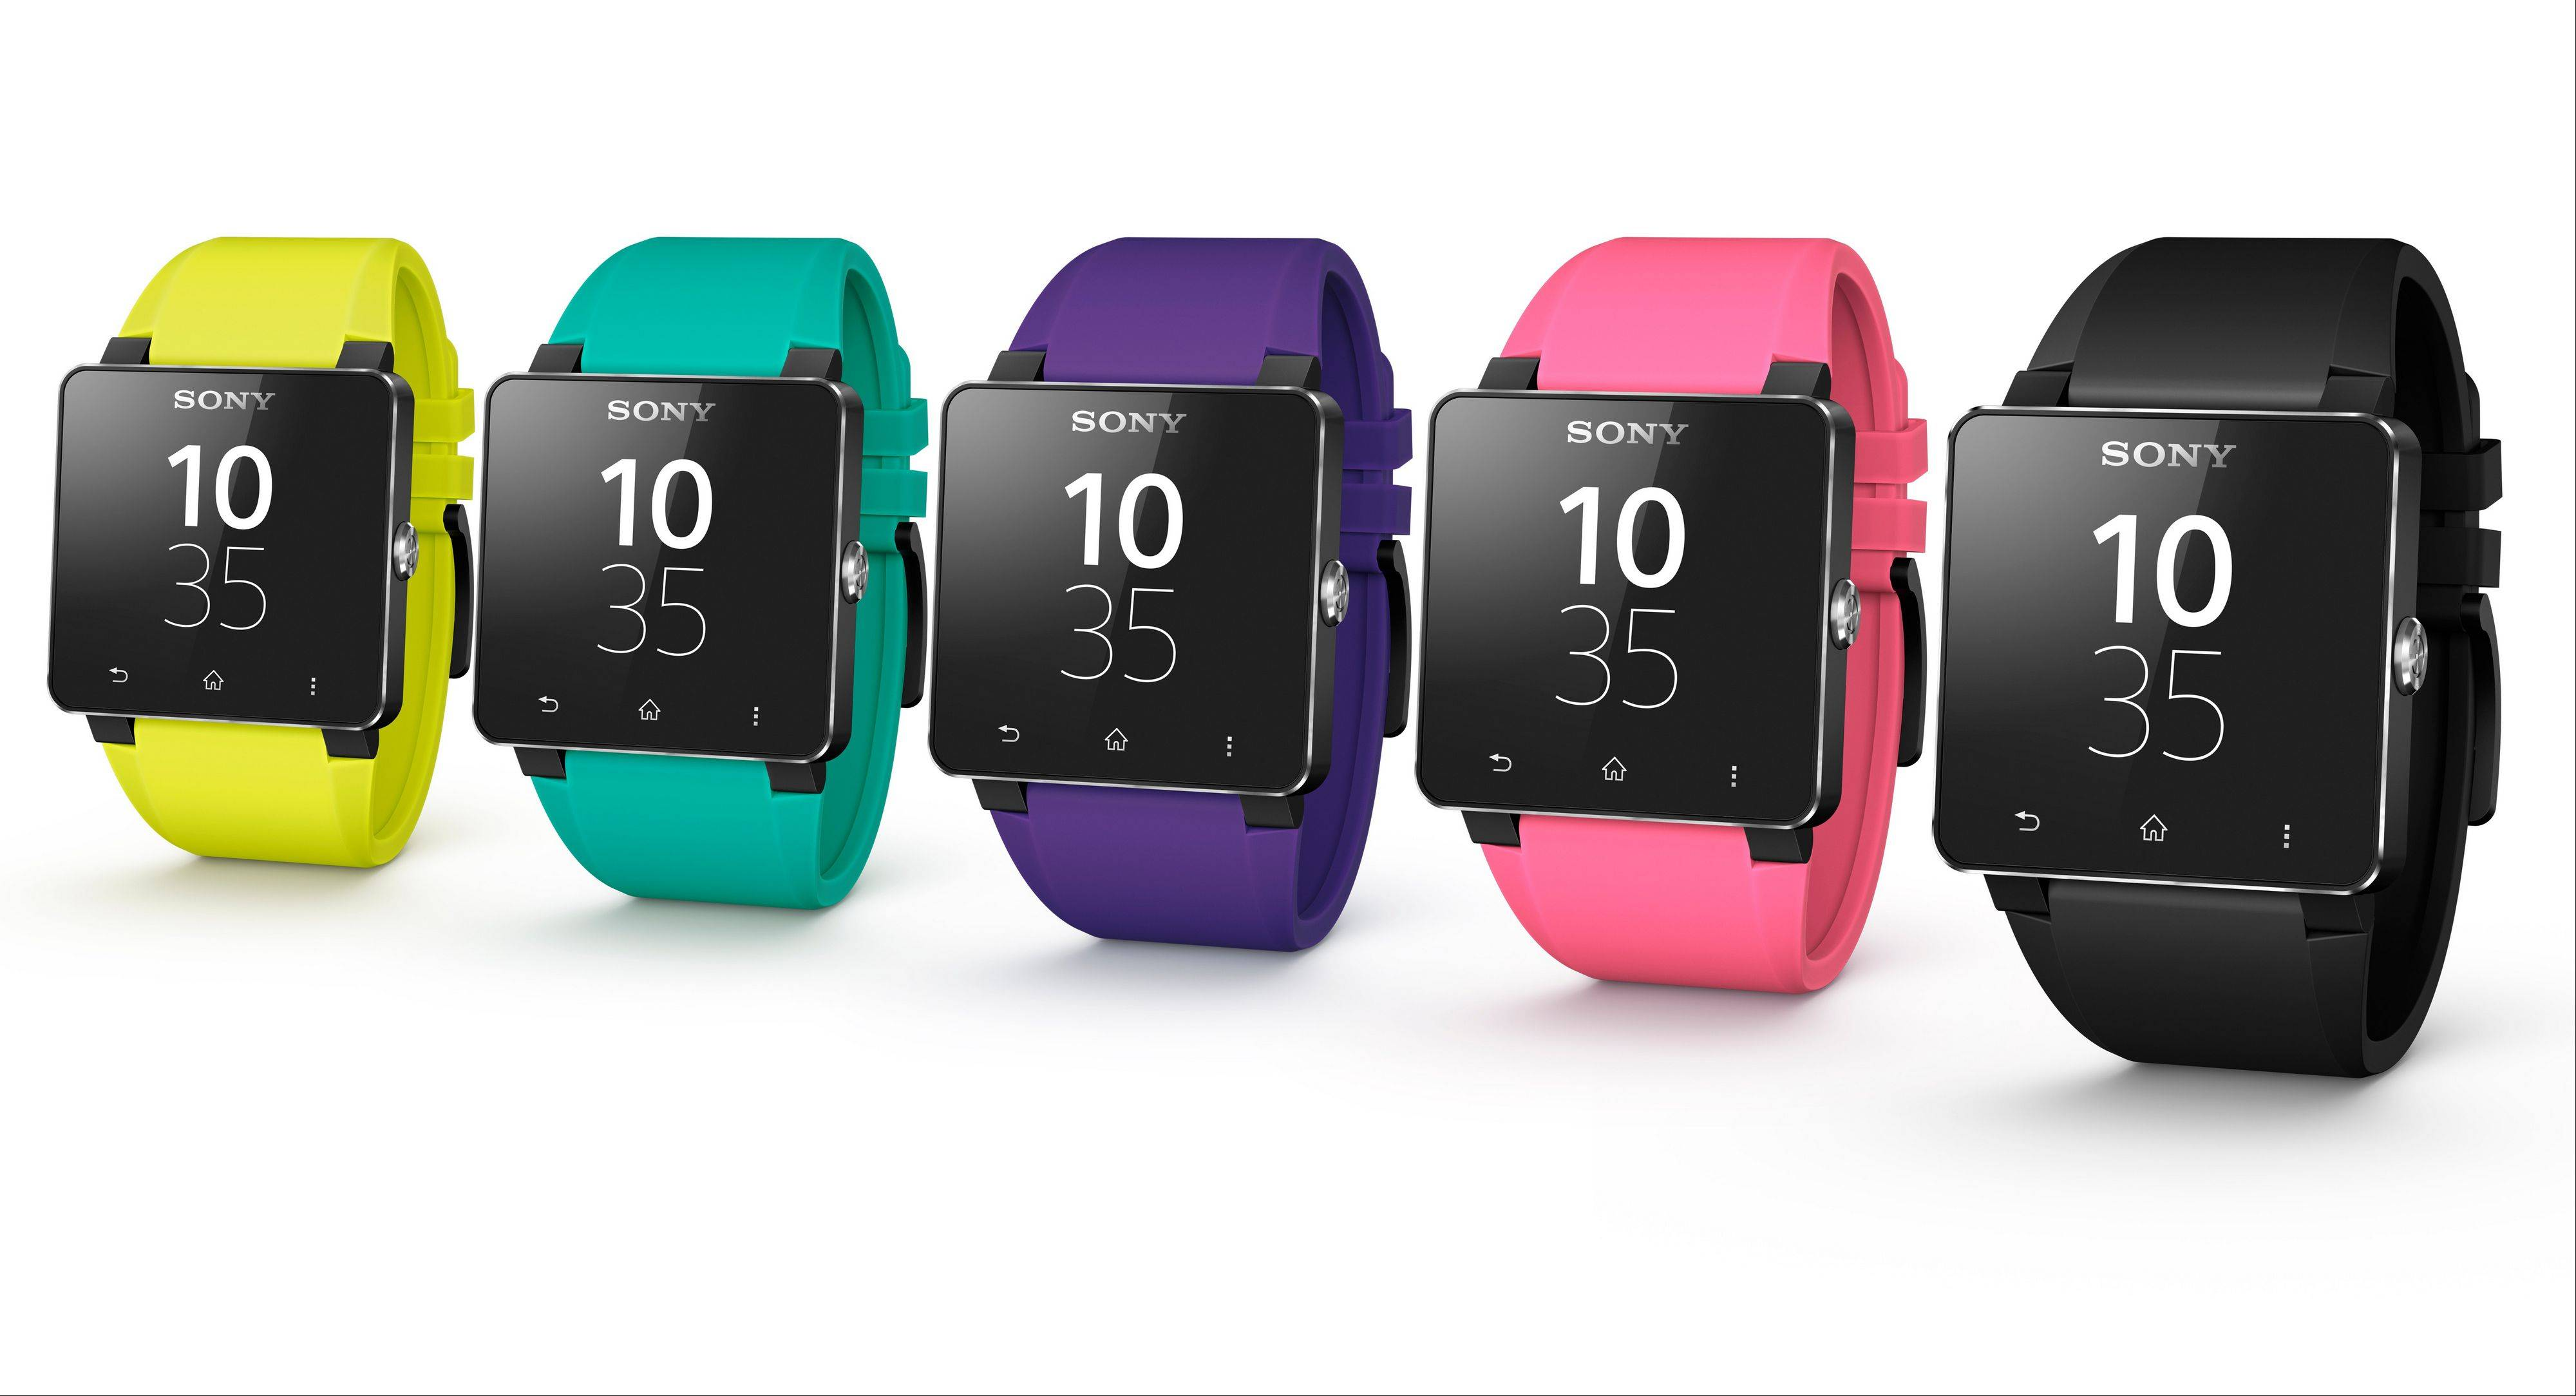 Sony's SmartWatch 2 comes in a variety of colors. Sony says its new computerized wristwatch will sell for $200 in the U.S. and will work with a variety of Android phones.